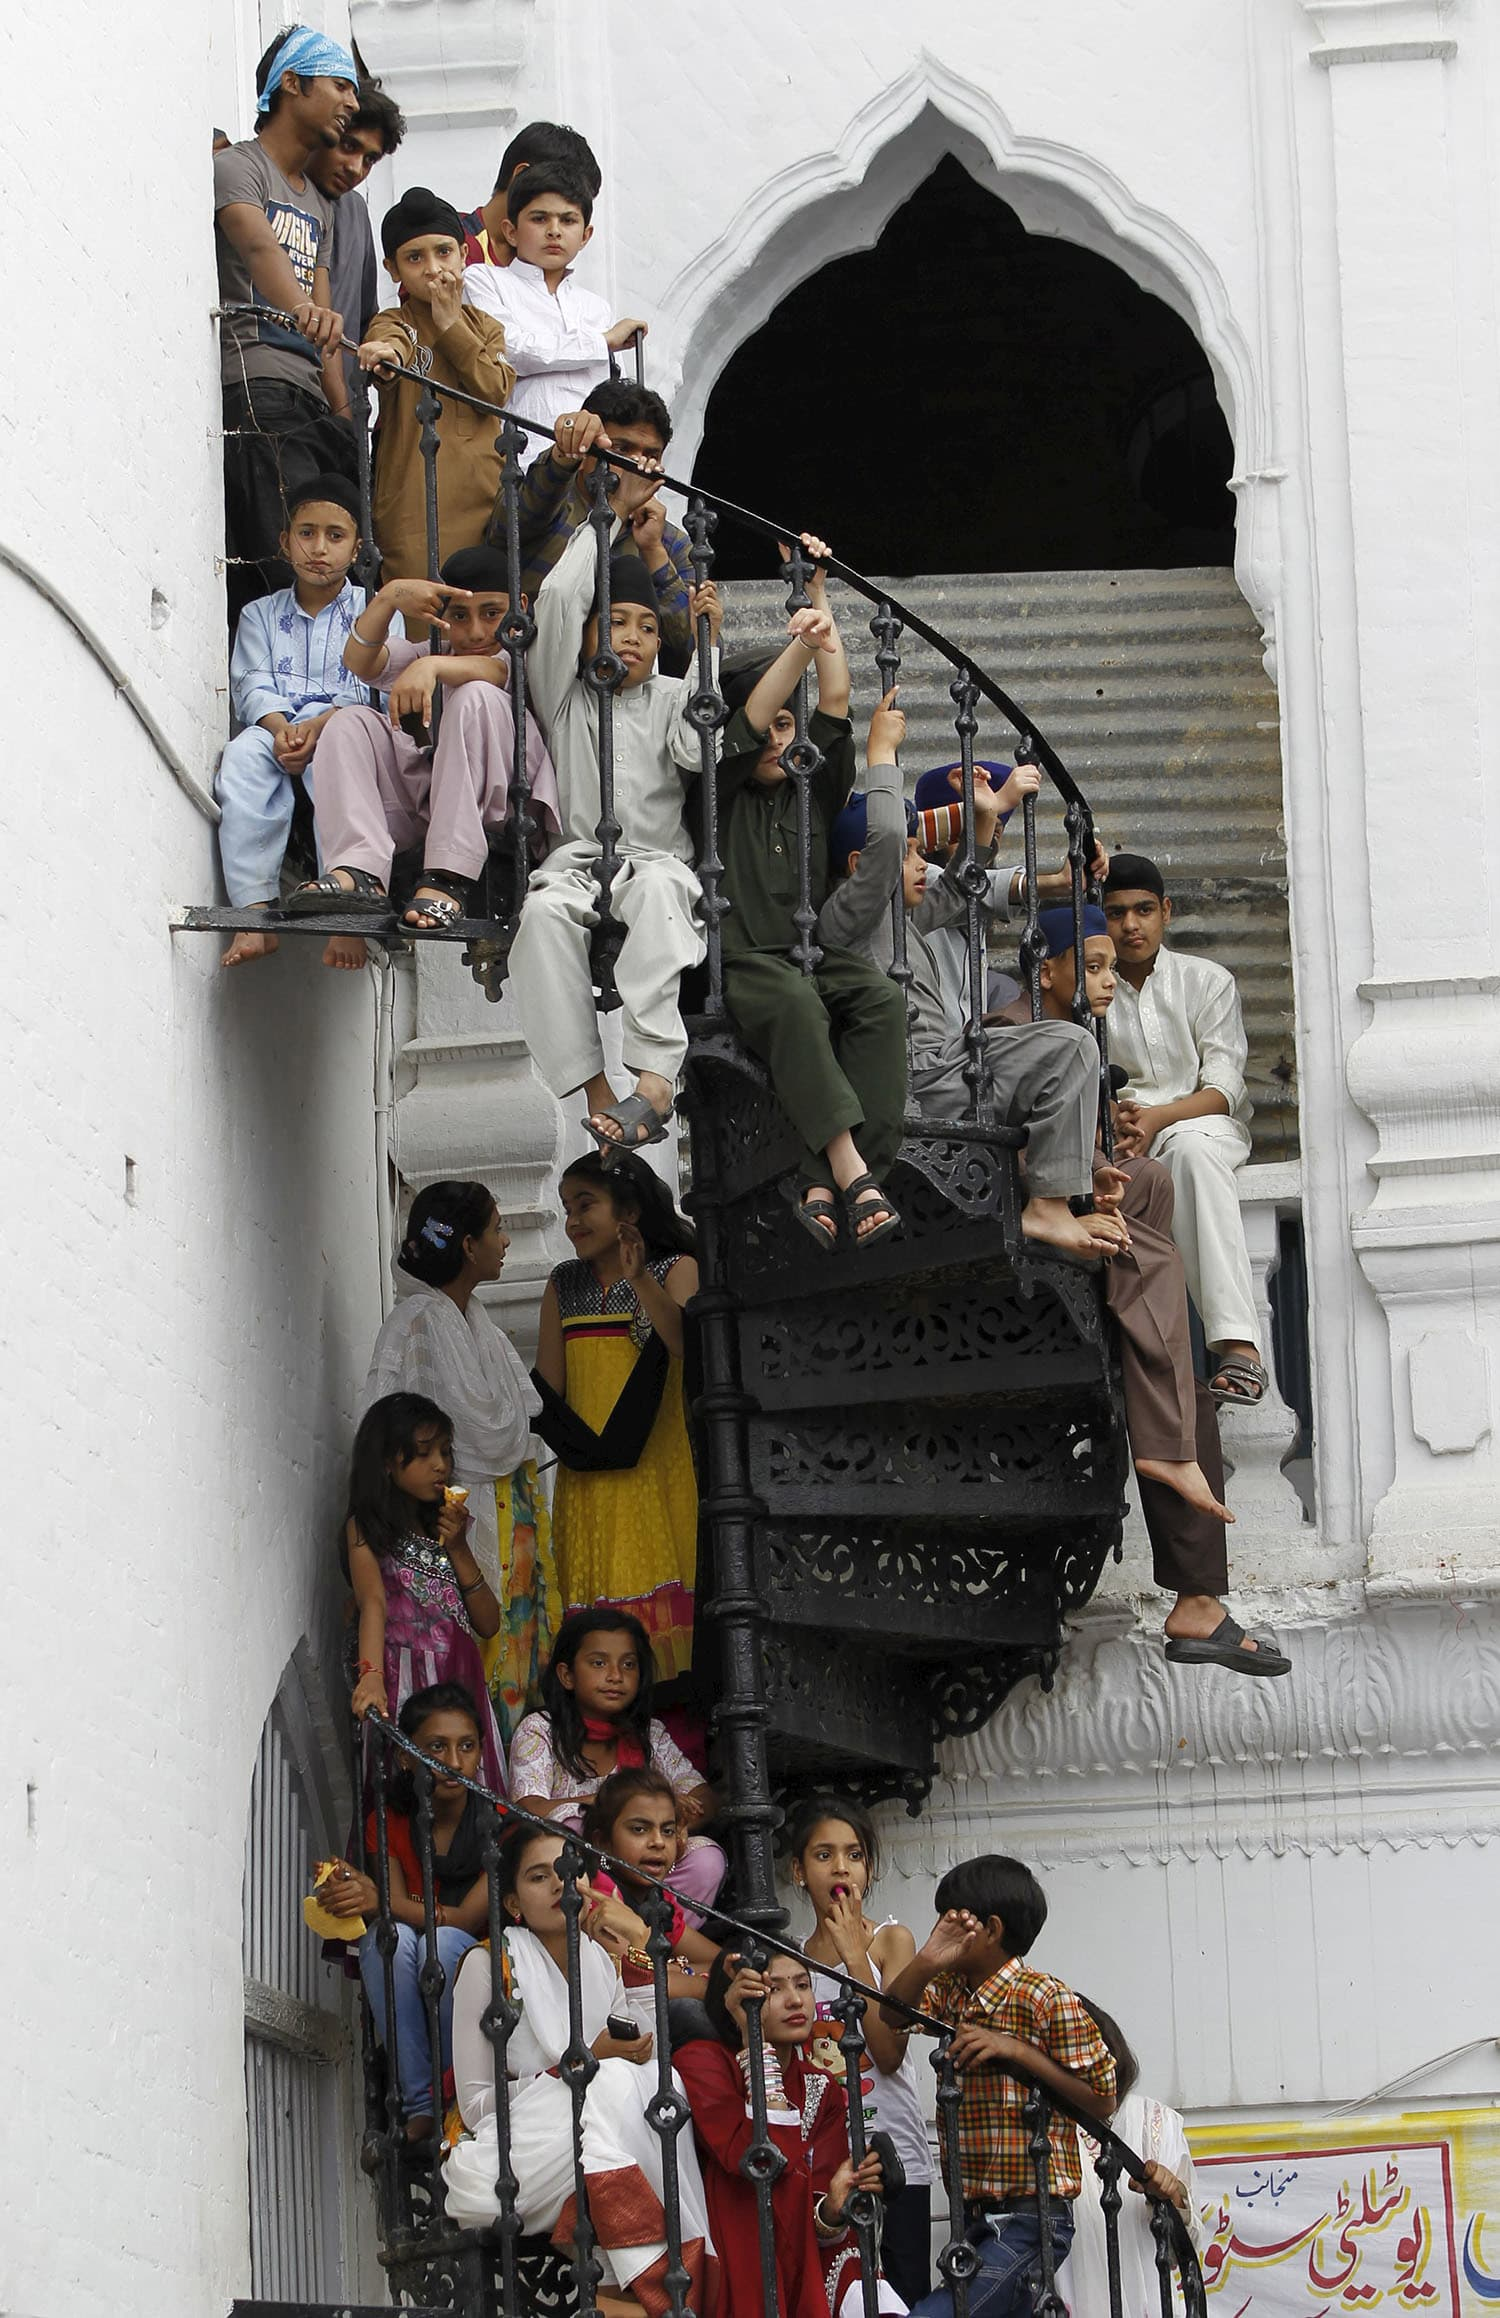 Children watch the Baisakhi festival at Panja Sahib shrine in Hassan Abdal.— Reuters